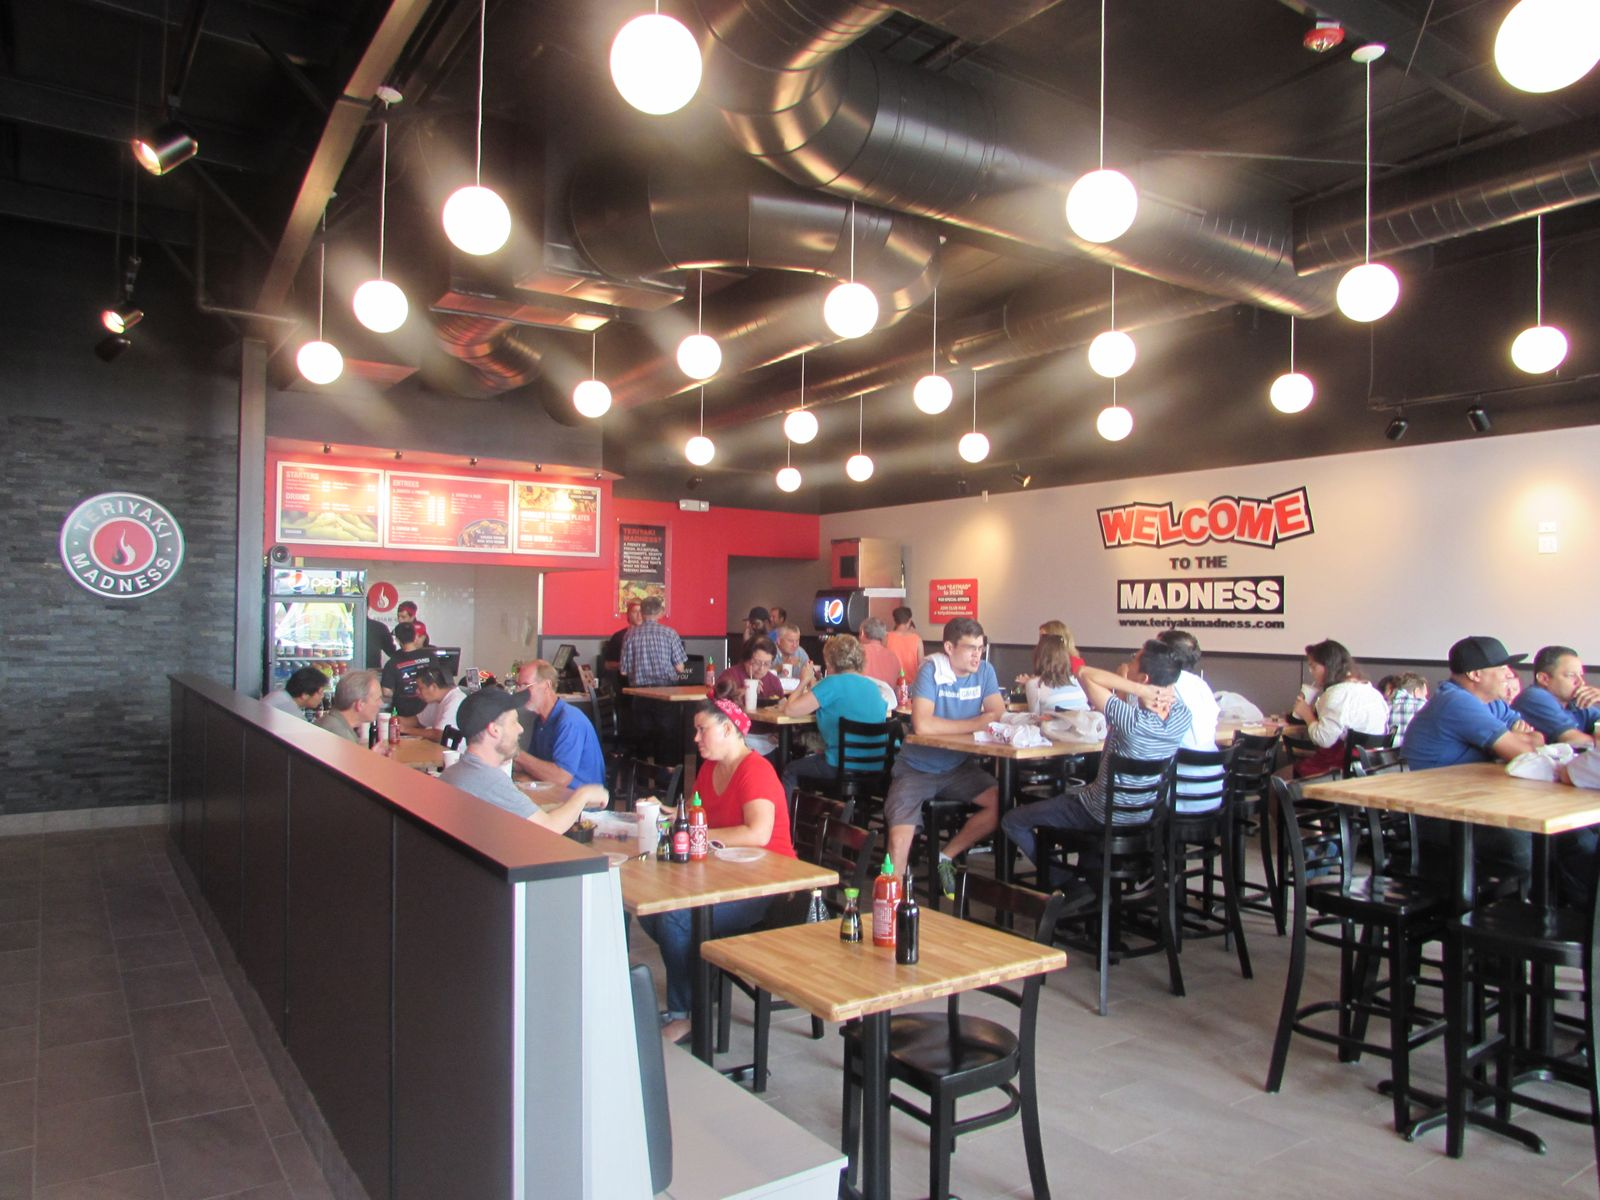 Teriyaki Madness to Celebrate Opening in Bakersfield on October 7